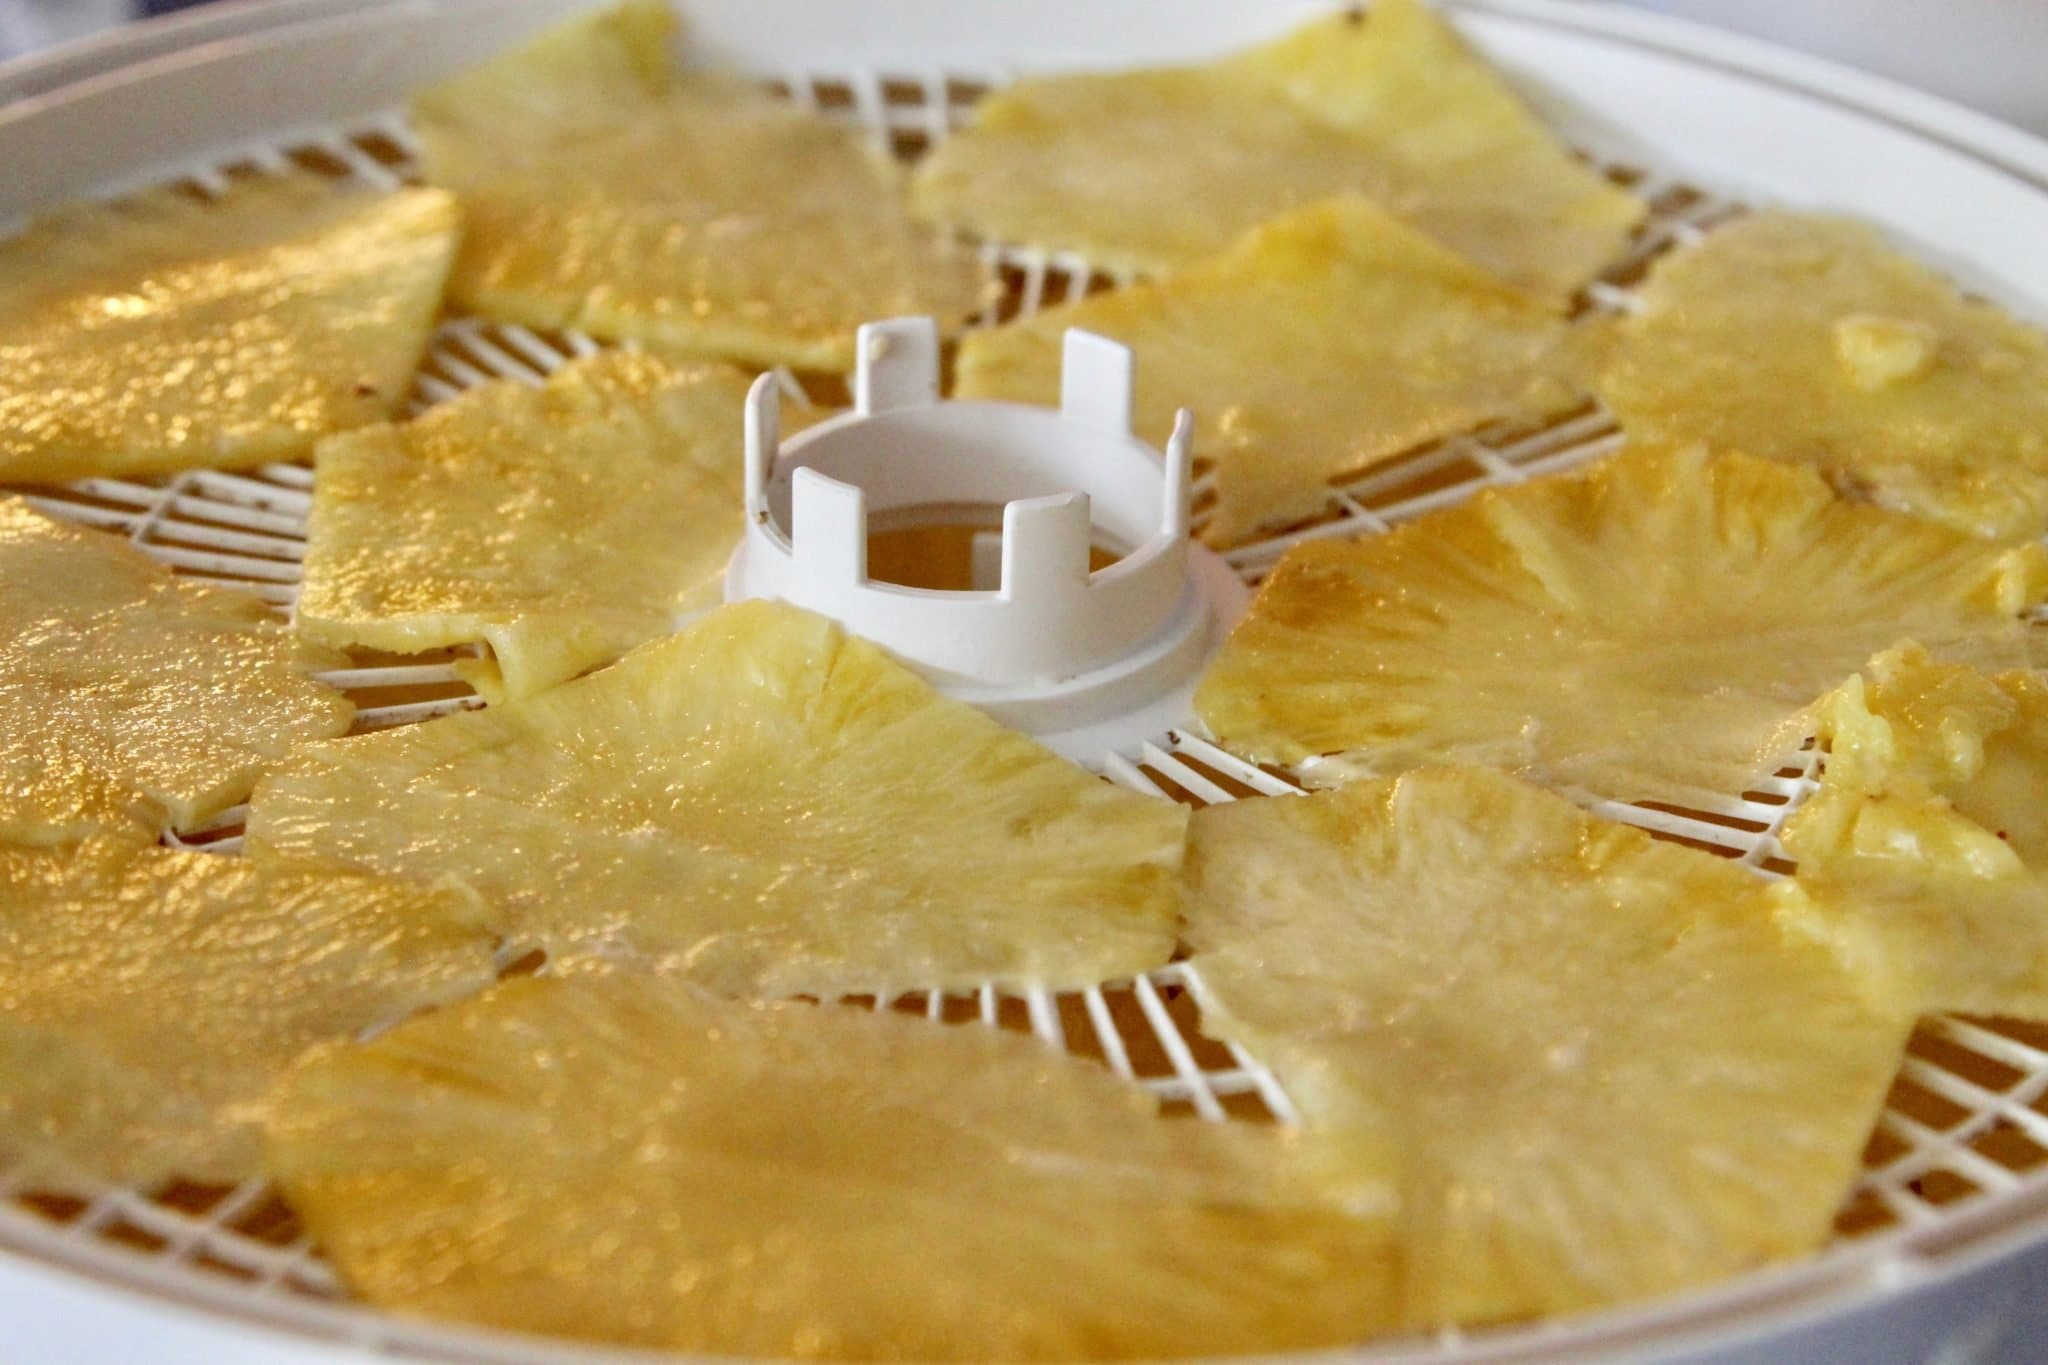 pineapple slices on dehydrator trays